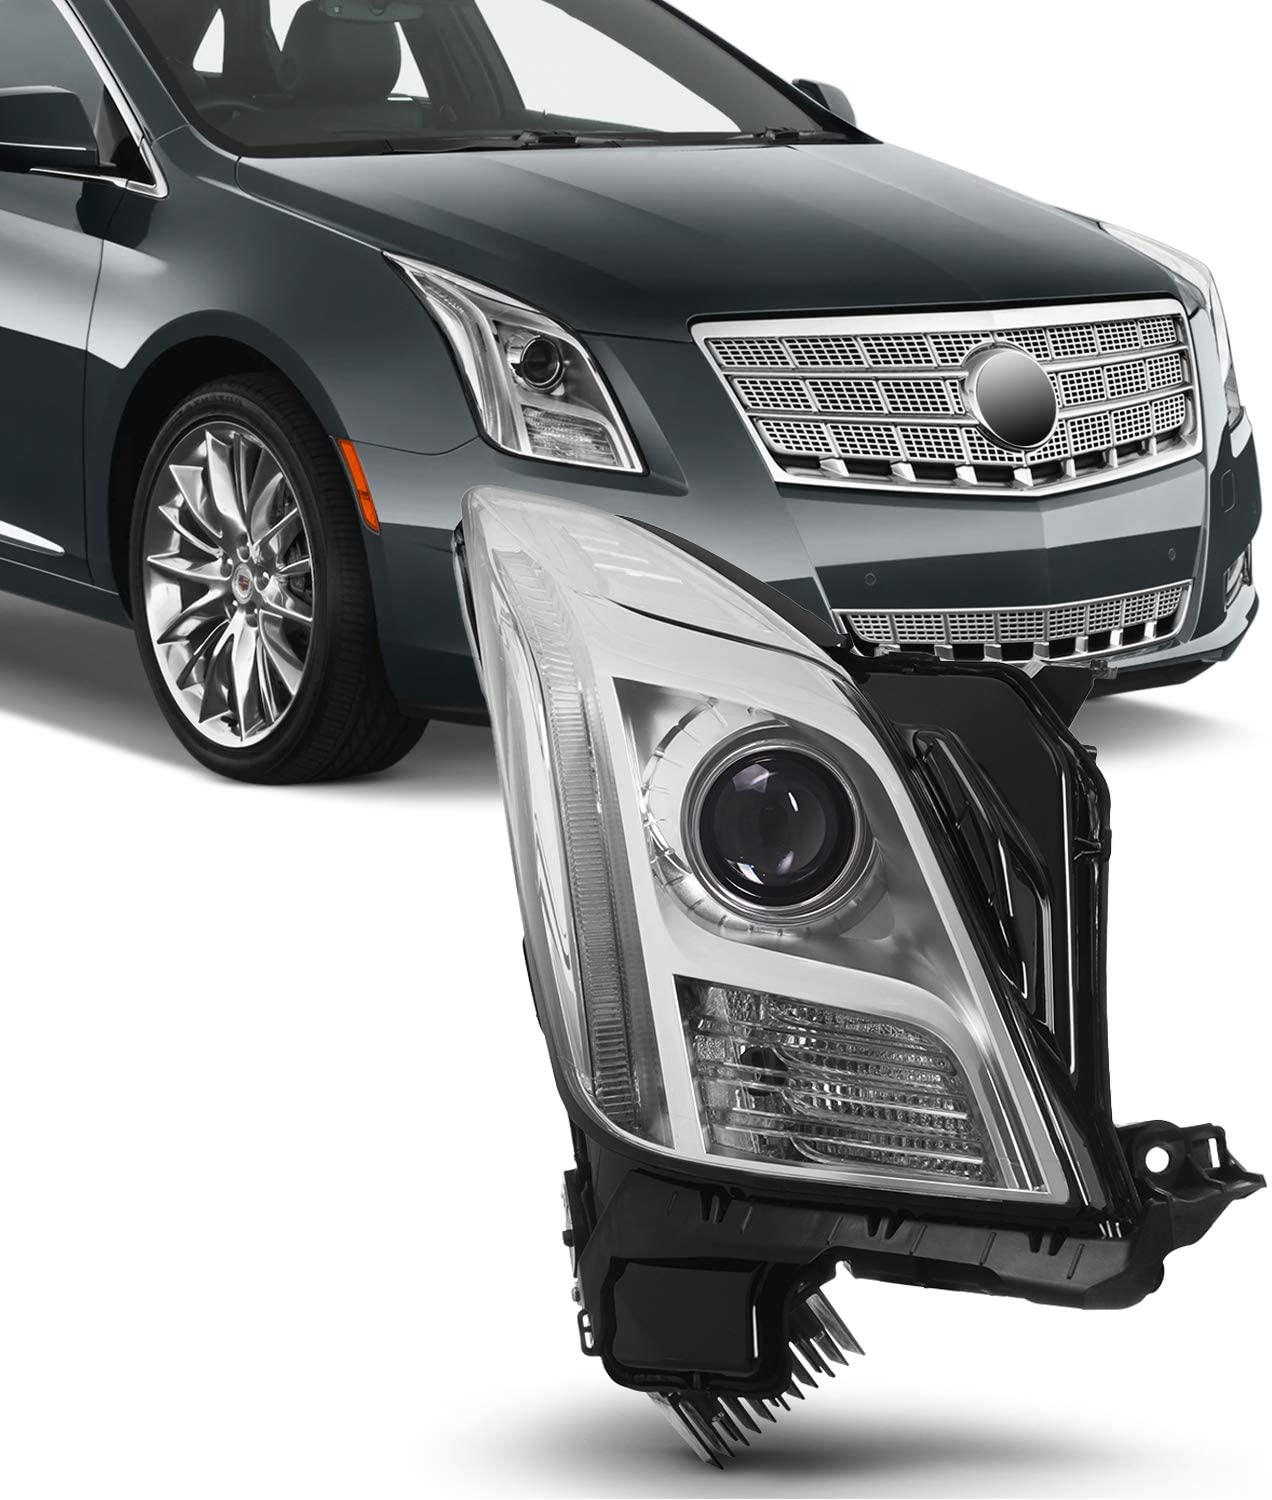 For 13-17 Cadillac XTS [AFS MODEL ONLY] Passenger RIGHT Side Chrome Projector Headlight Lamp Direct Replacement